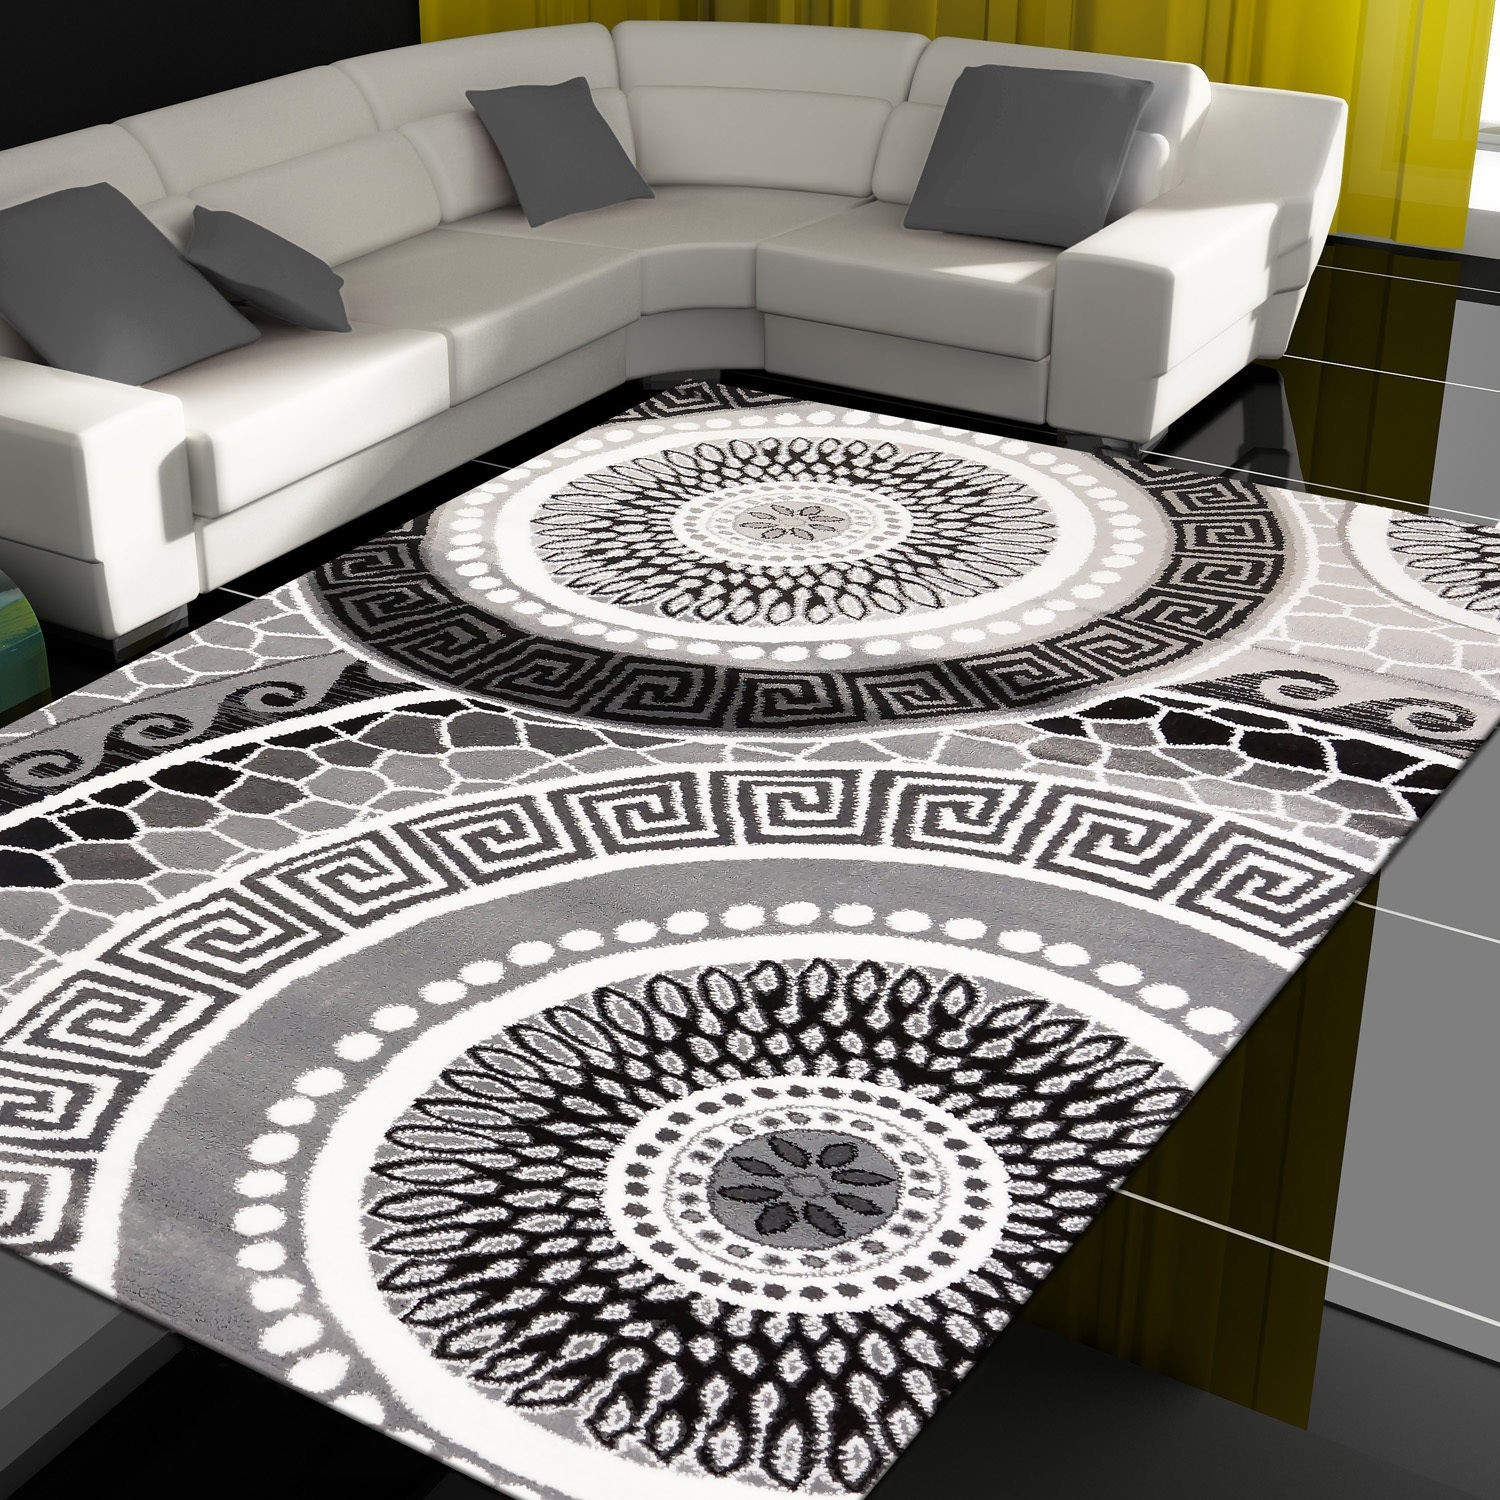 tapis fille alinea alinea tapis rond fabulous star plateau rond gris dcm with alinea with tapis. Black Bedroom Furniture Sets. Home Design Ideas